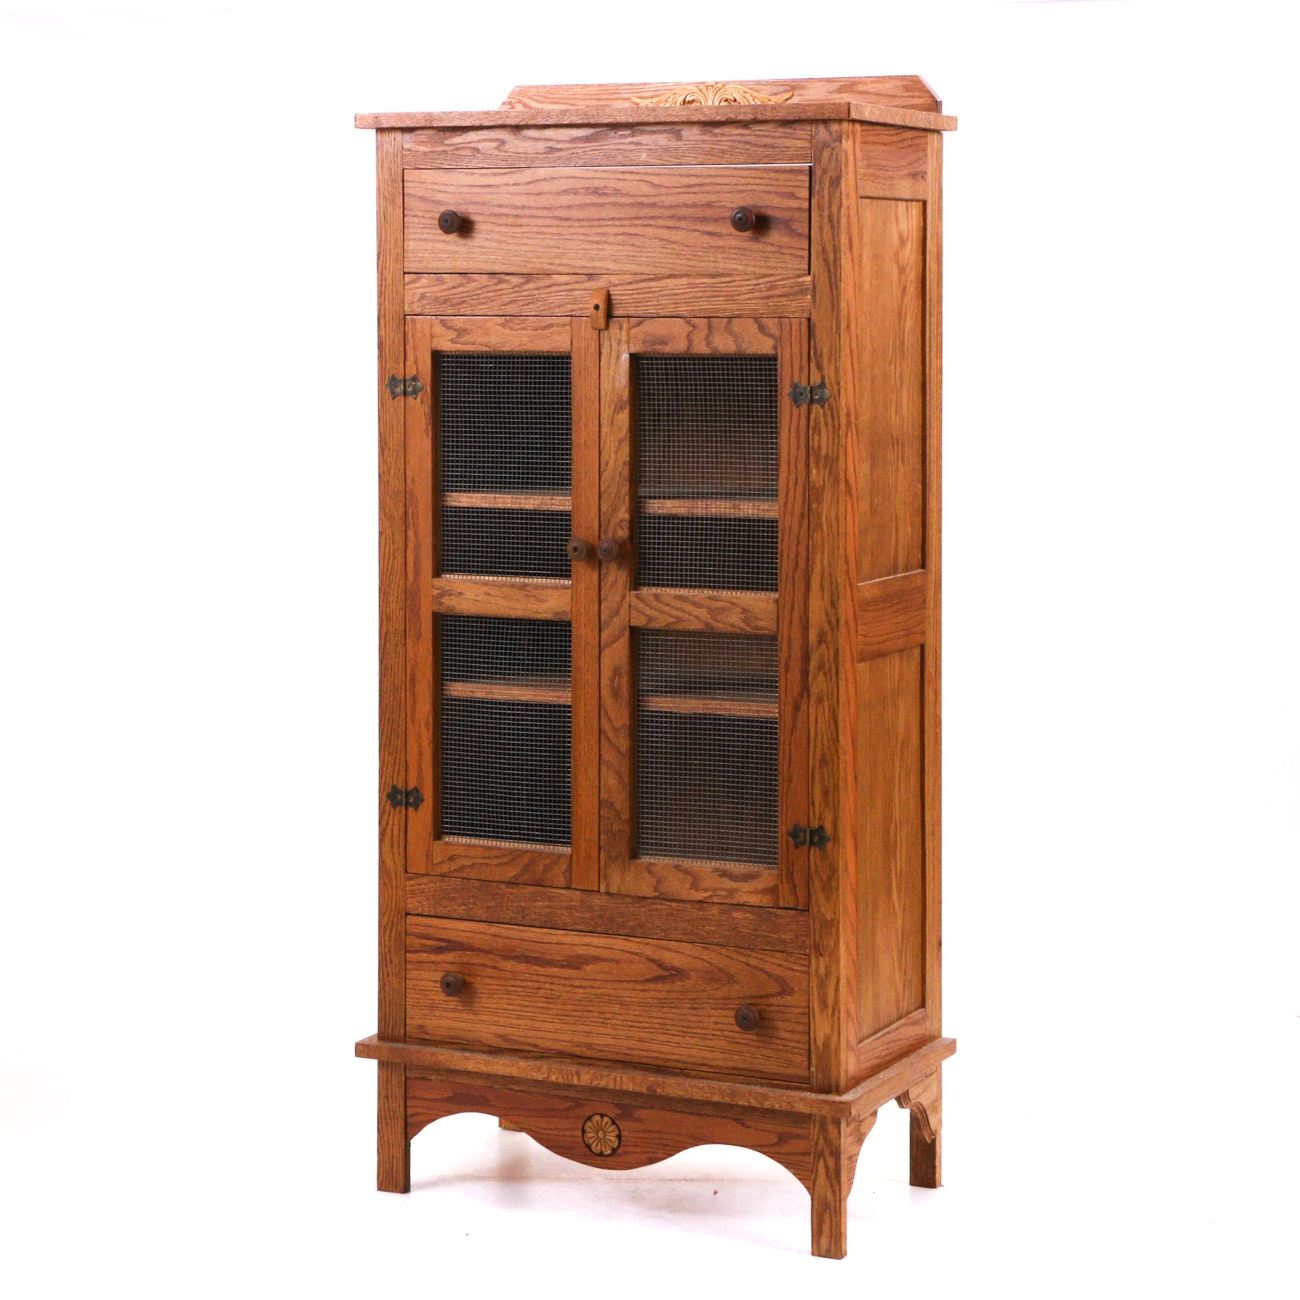 A Country Style Oak Cupboard with Wire Screen Doors